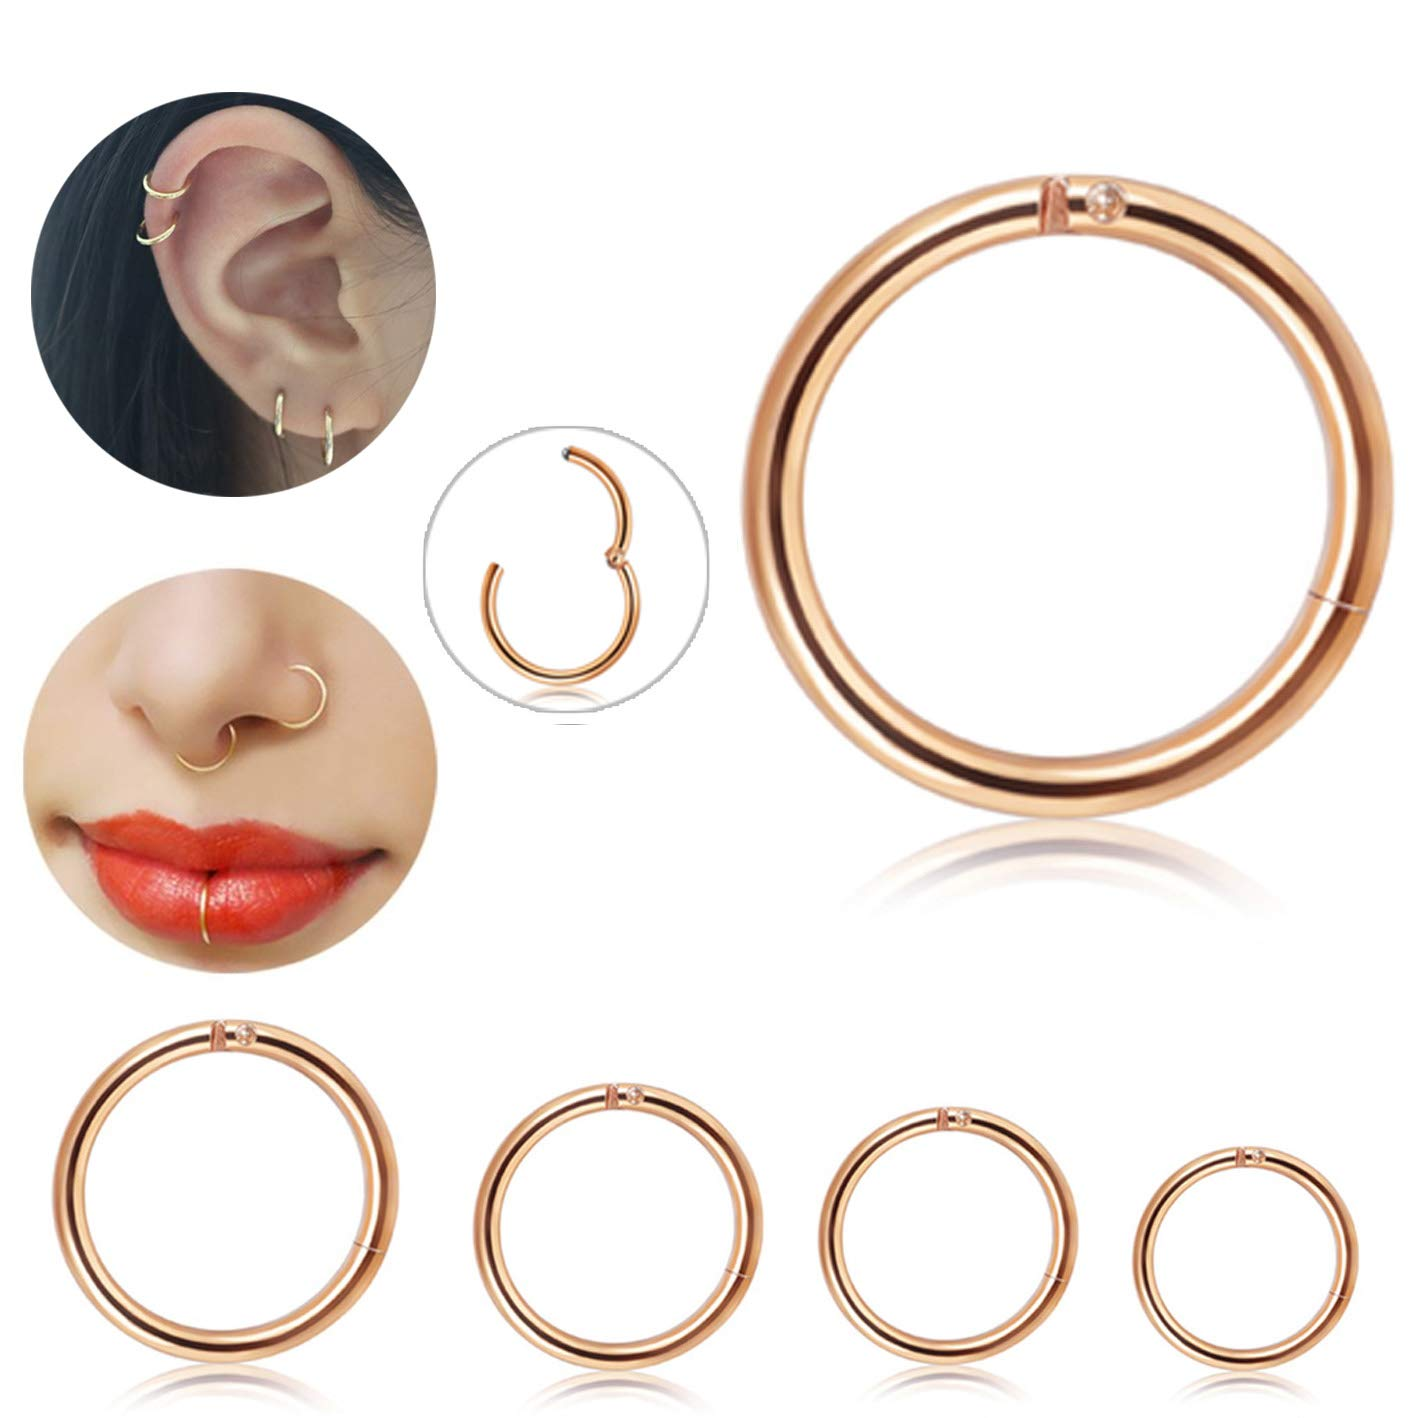 Besteel 4 Pcs Stainless Steel Cartilage Hoop Earrings for Men Women 16g Nose Hoop Ring Helix Septum Daith Tragus Couch Lip Piercing Jewelry,6-12mm Silver-Tone P5L005-16G-S